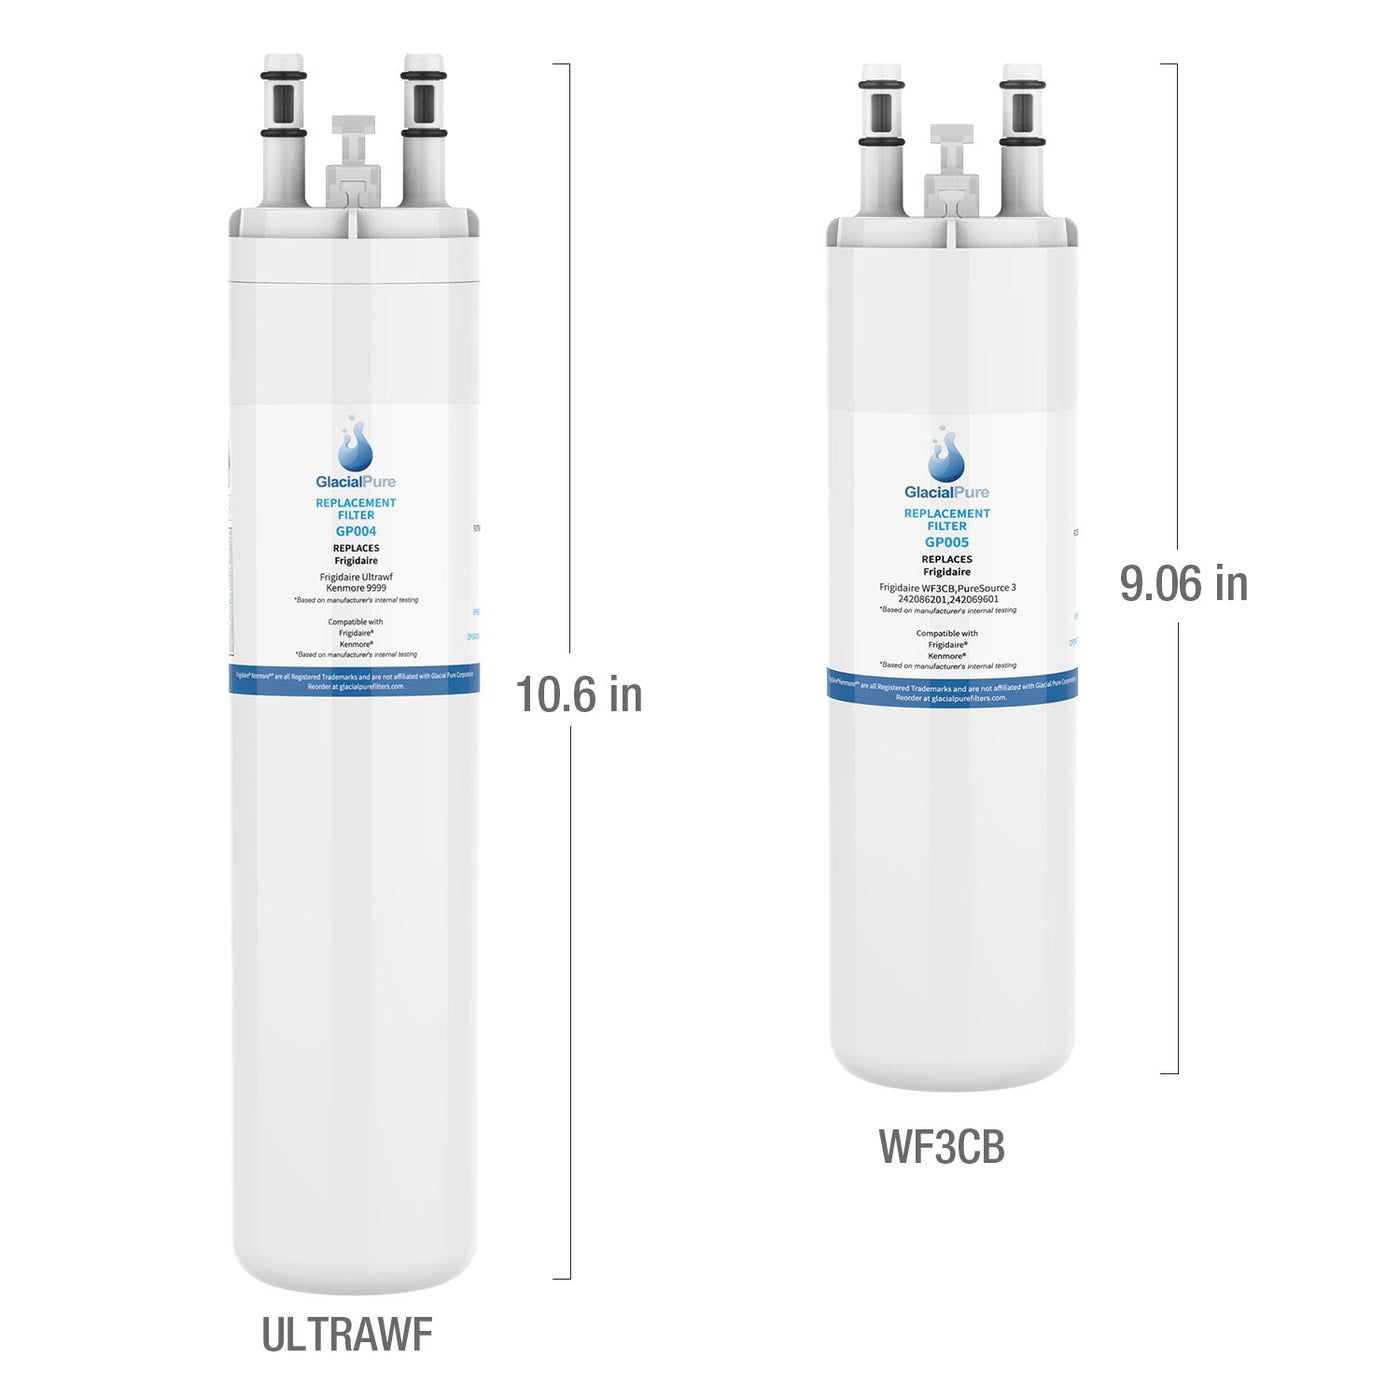 ULTRAWF Water Filter, Kenmore 9999, FGHB2844LF, For Refrigerator Water Filters Replacement, 11.7*2.4*3.9 inches (4-Pack)